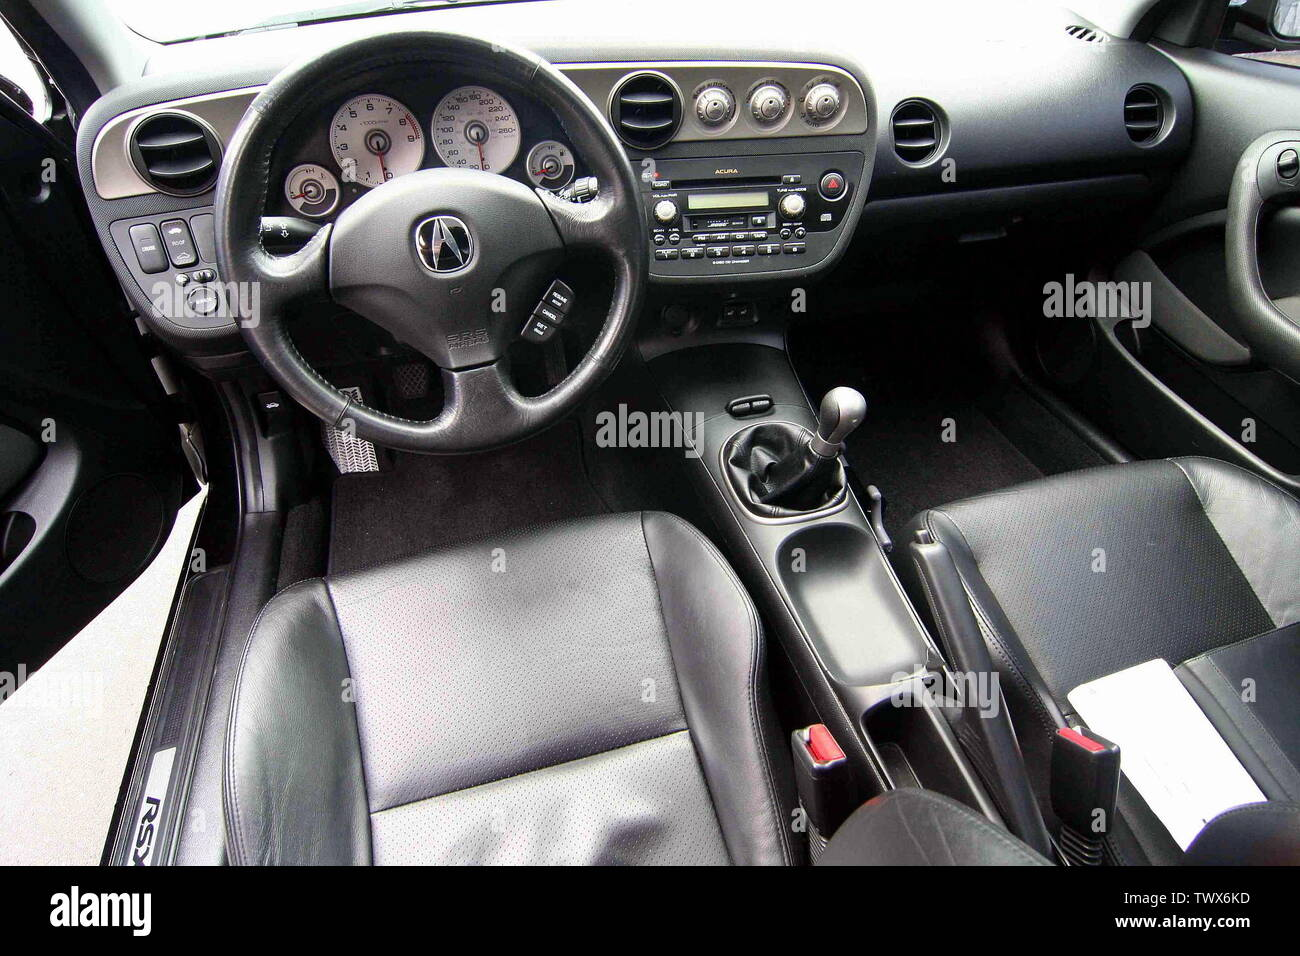 Rsx High Resolution Stock Photography And Images Alamy